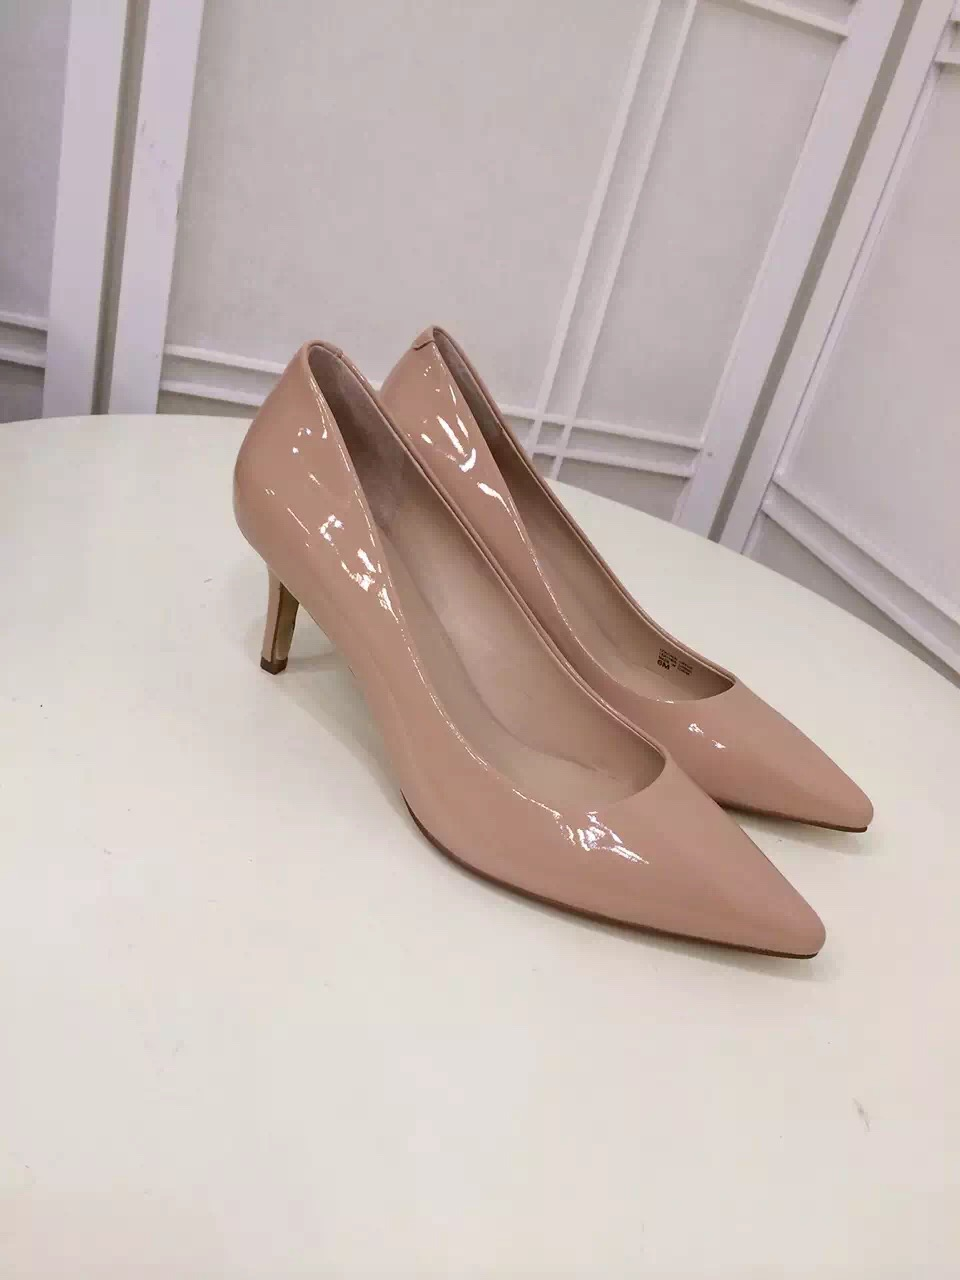 2016 SS new pumps elegant office lady women ann pointed toes thin high heels fashion shoes genuine leather shoes